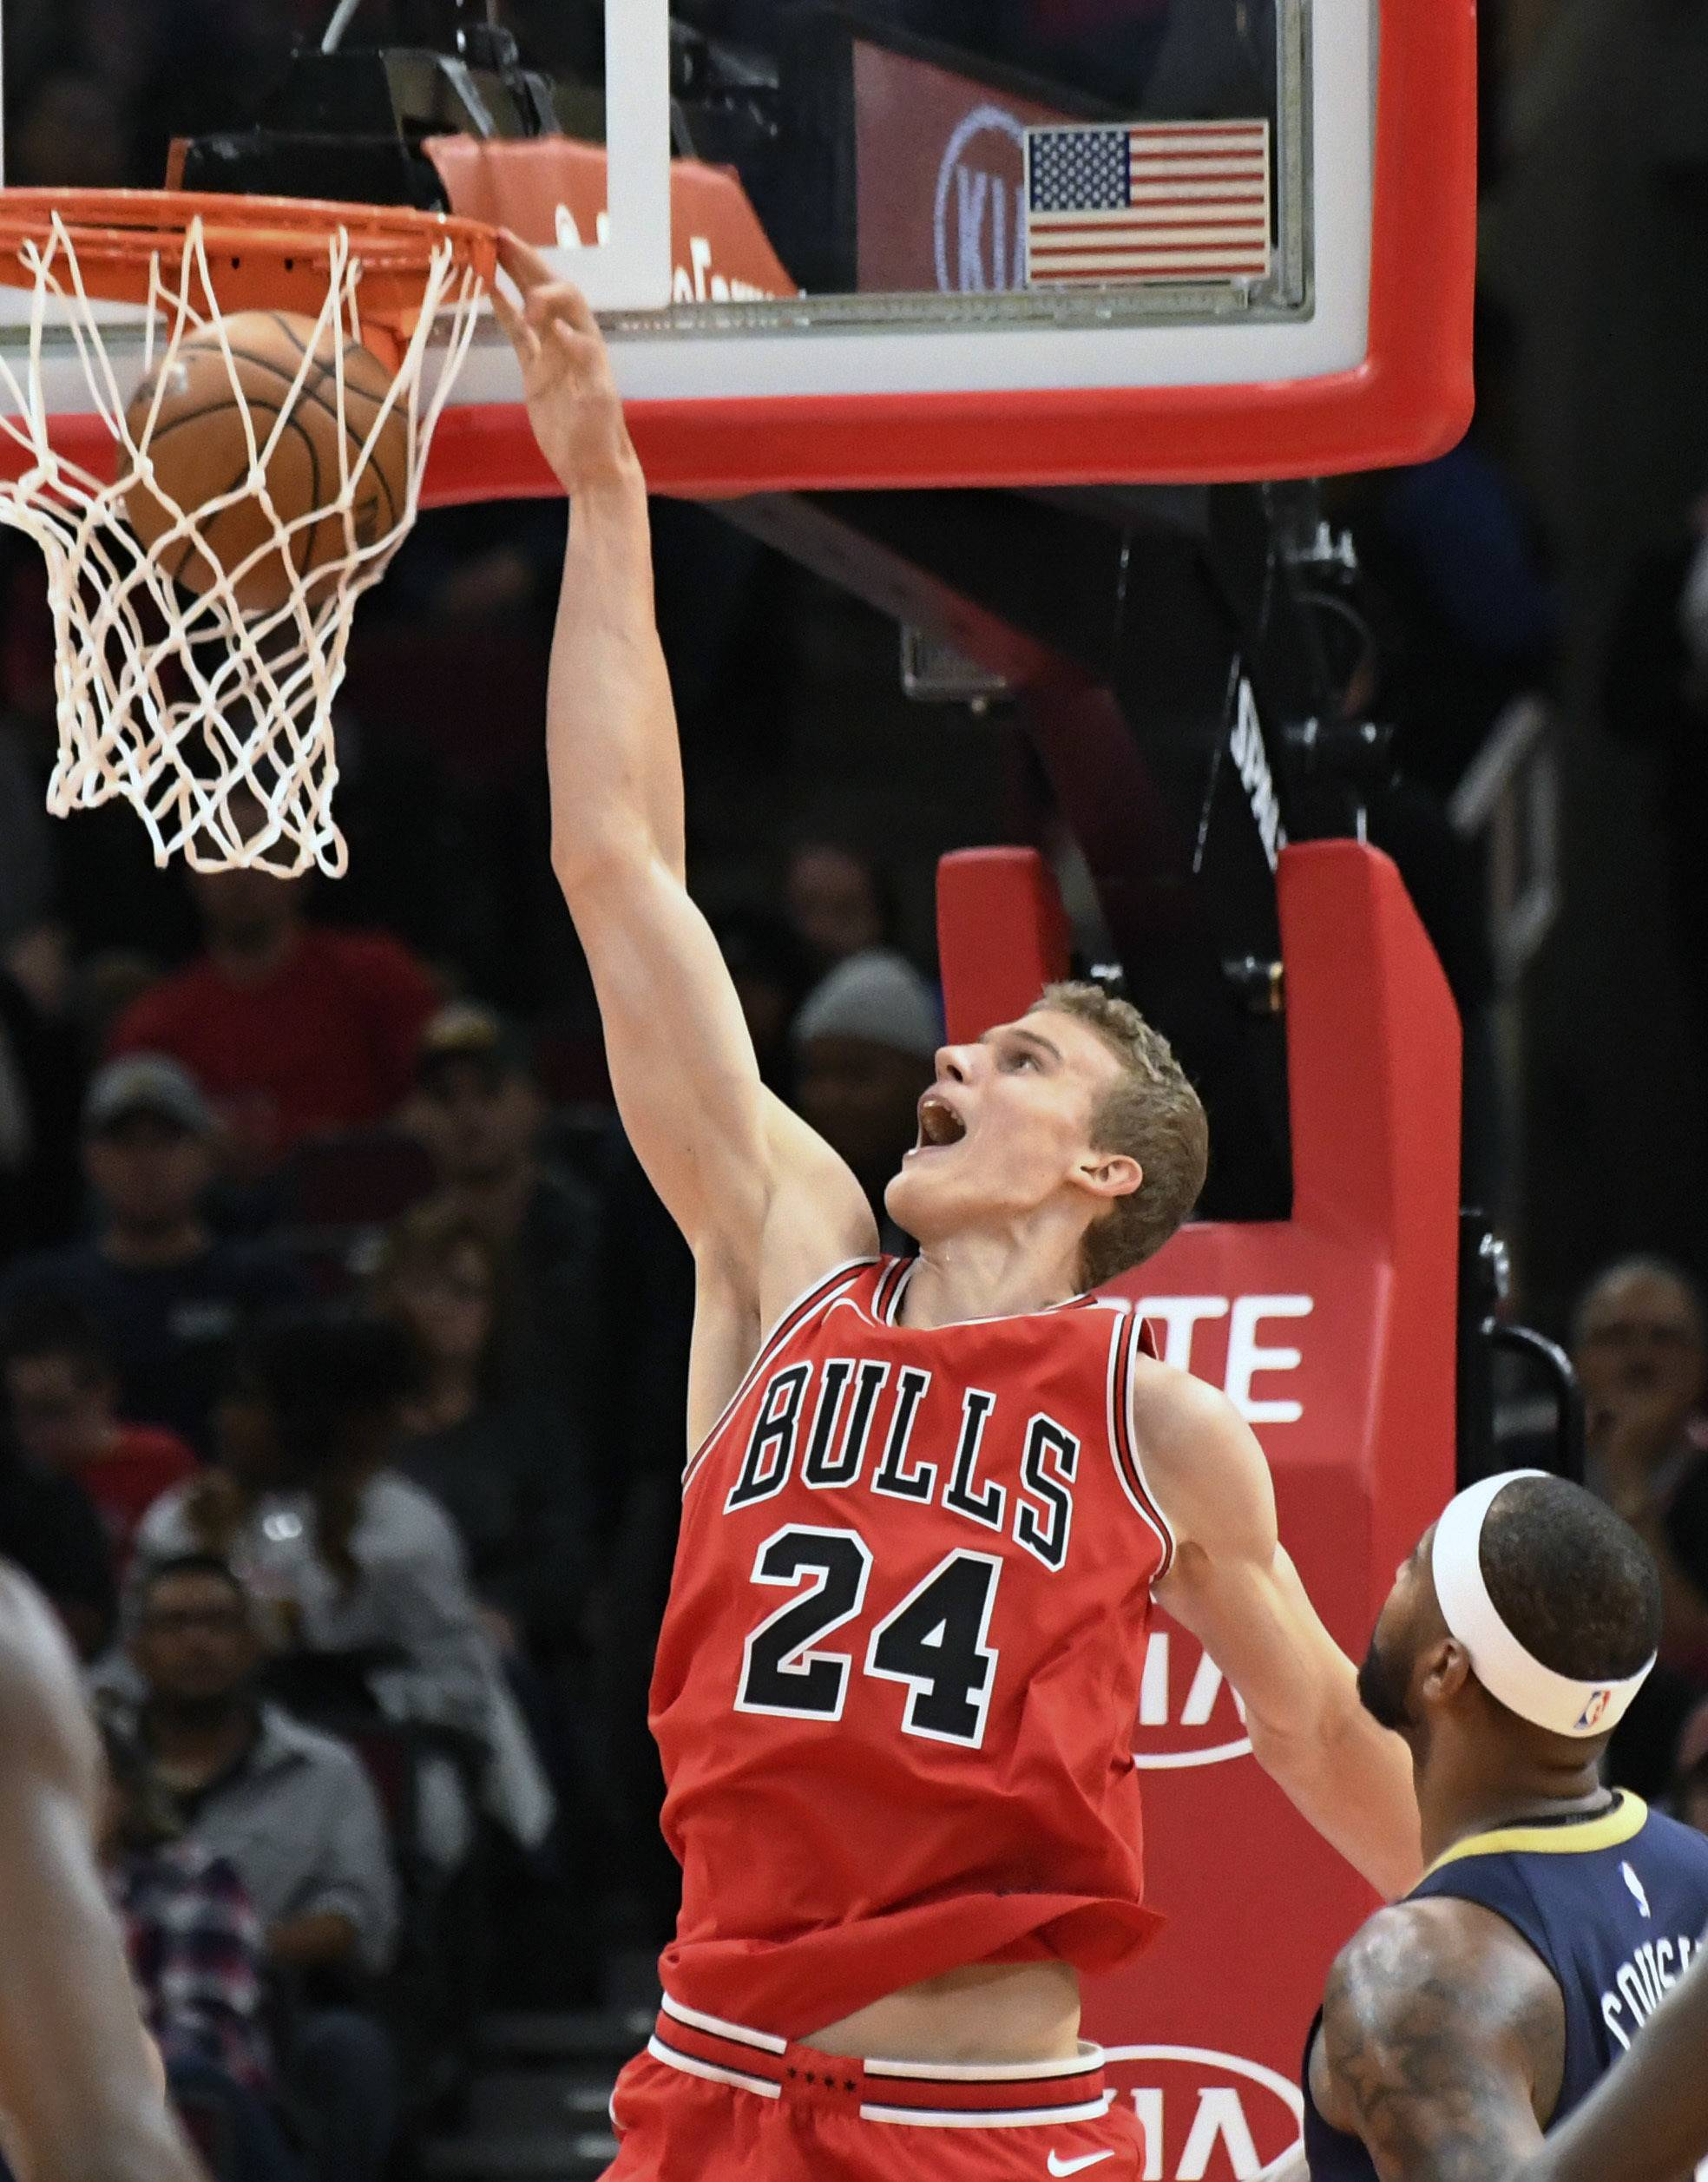 Chicago Bulls rookie forward Lauri Markkanen has averaged 32.6 minutes per game this season. He leads the team in scoring and rebounding.